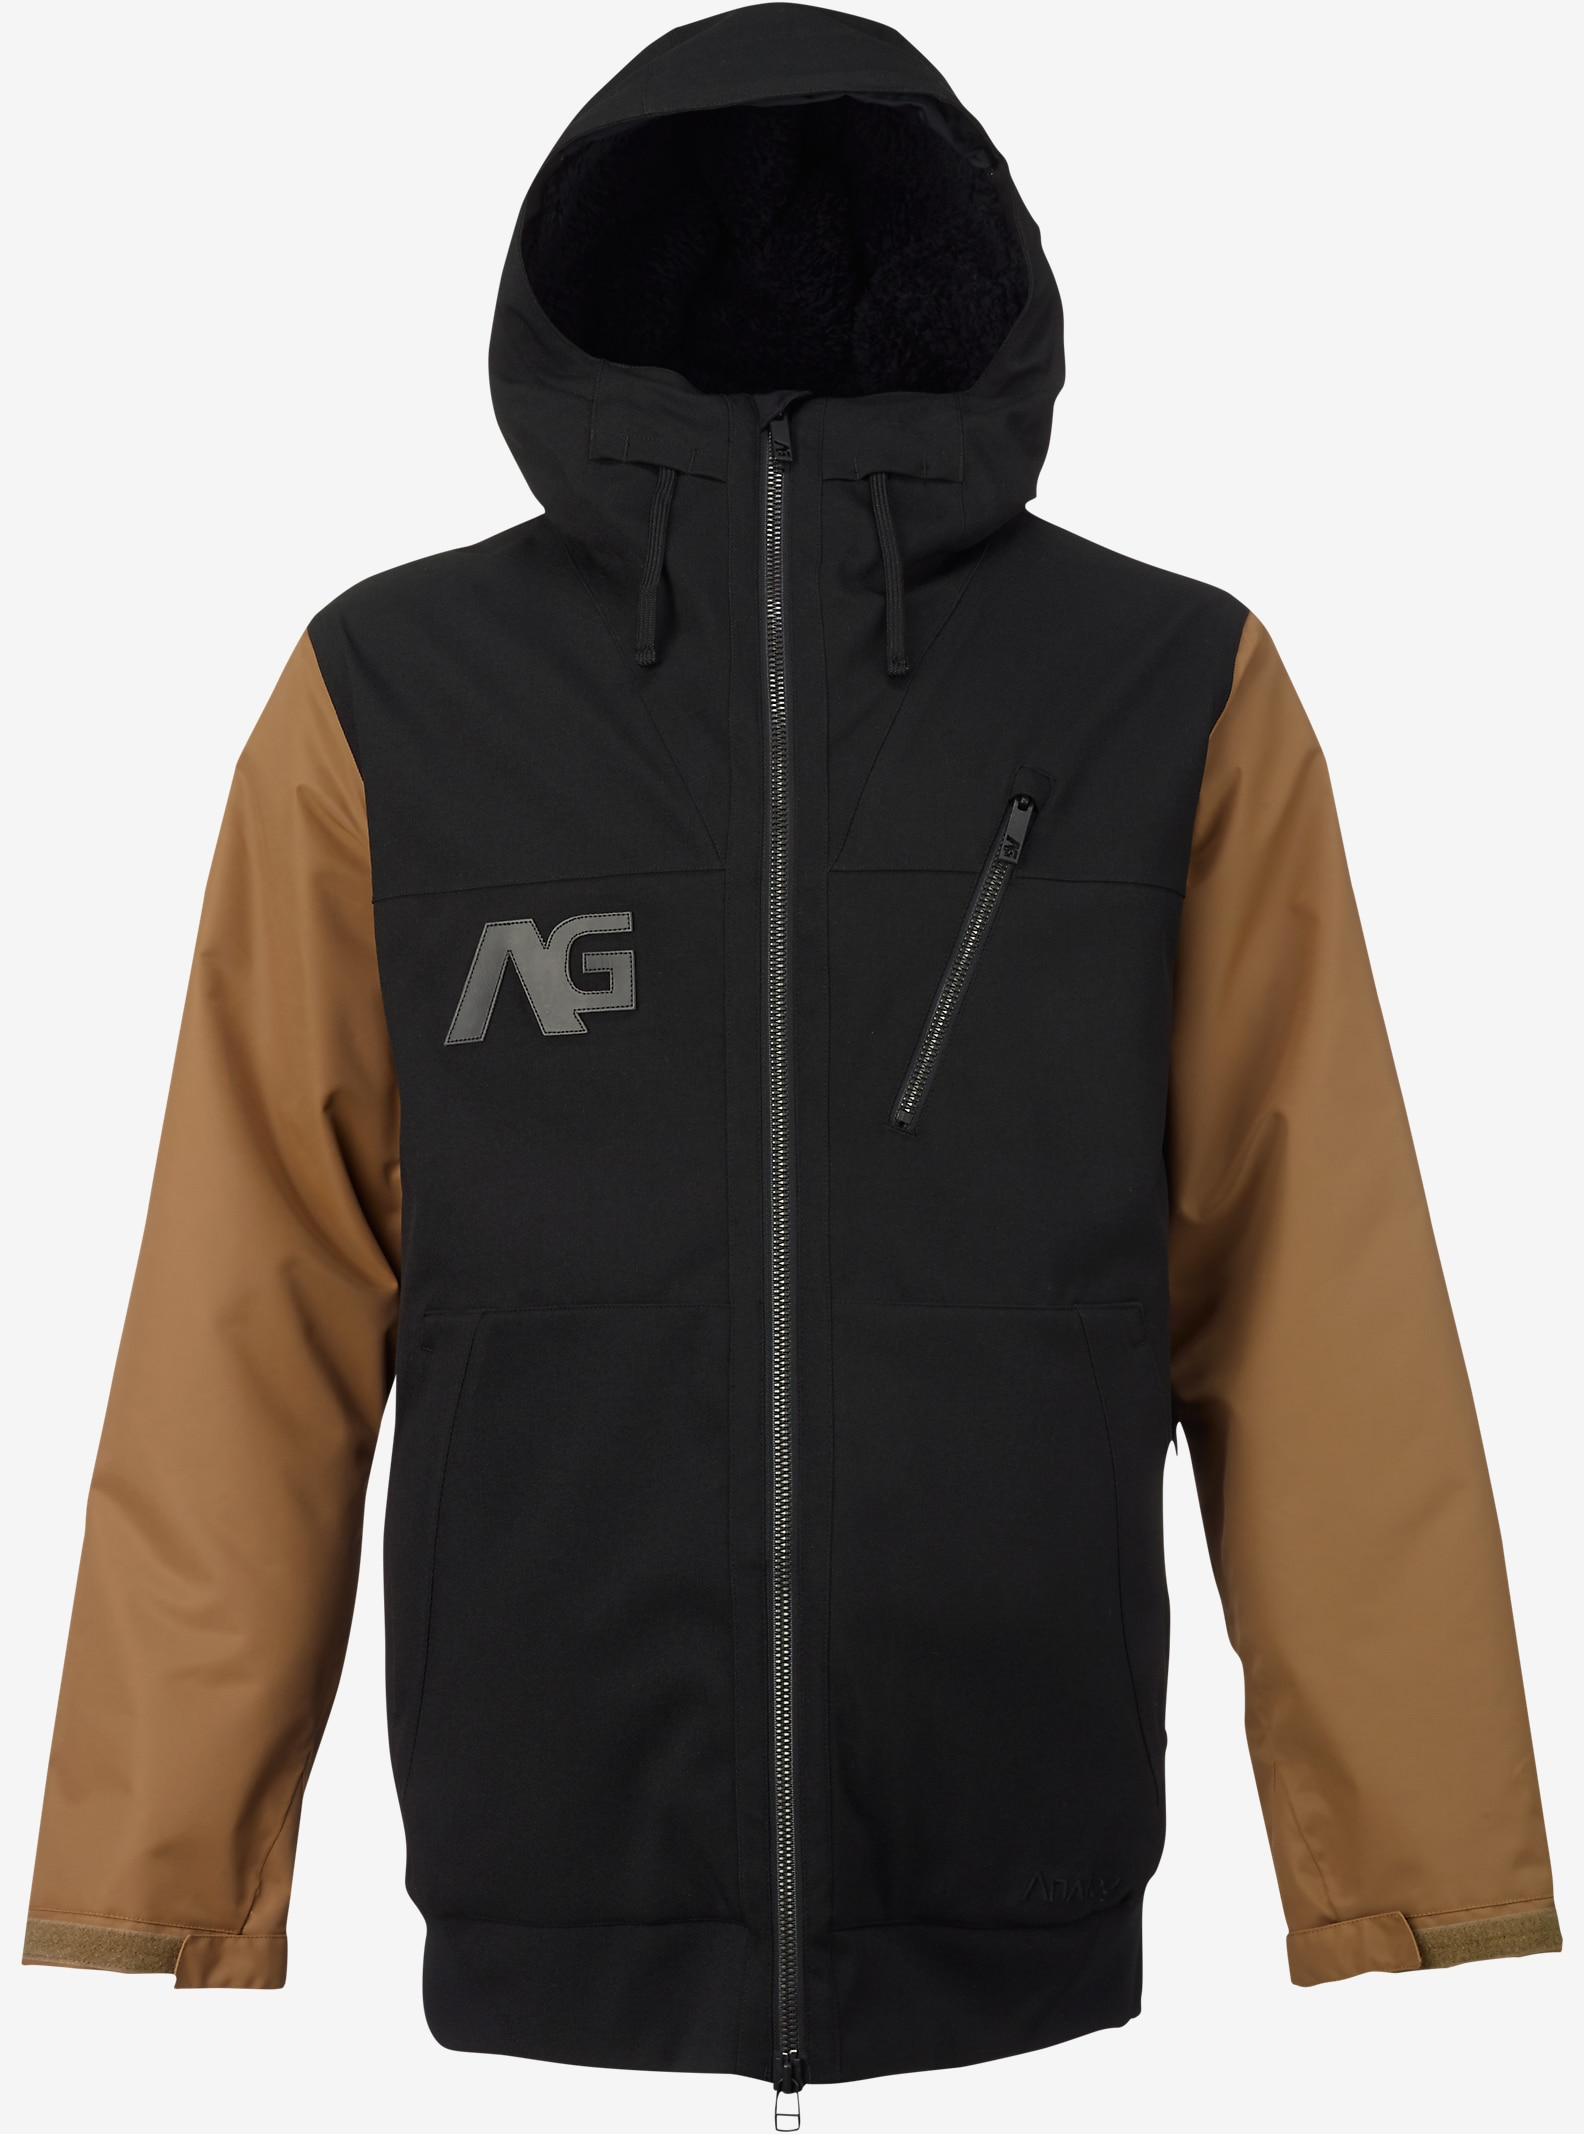 Analog Greed Jacket shown in True Black